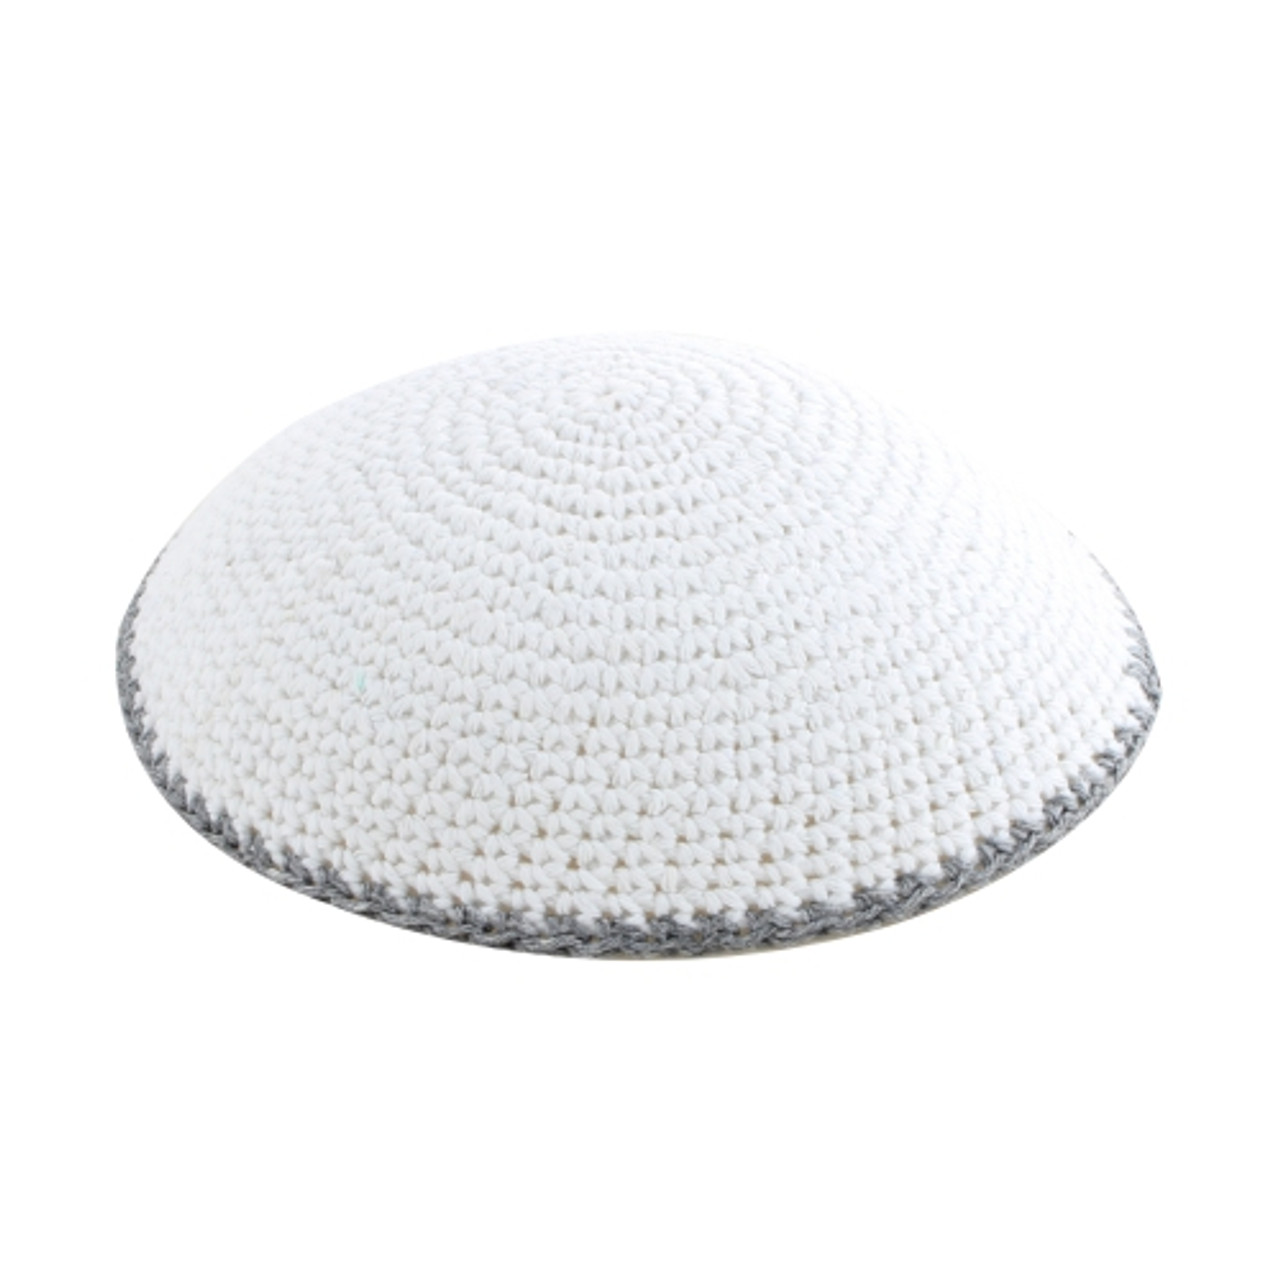 White with Gray Trim DMC Knitted Kippah